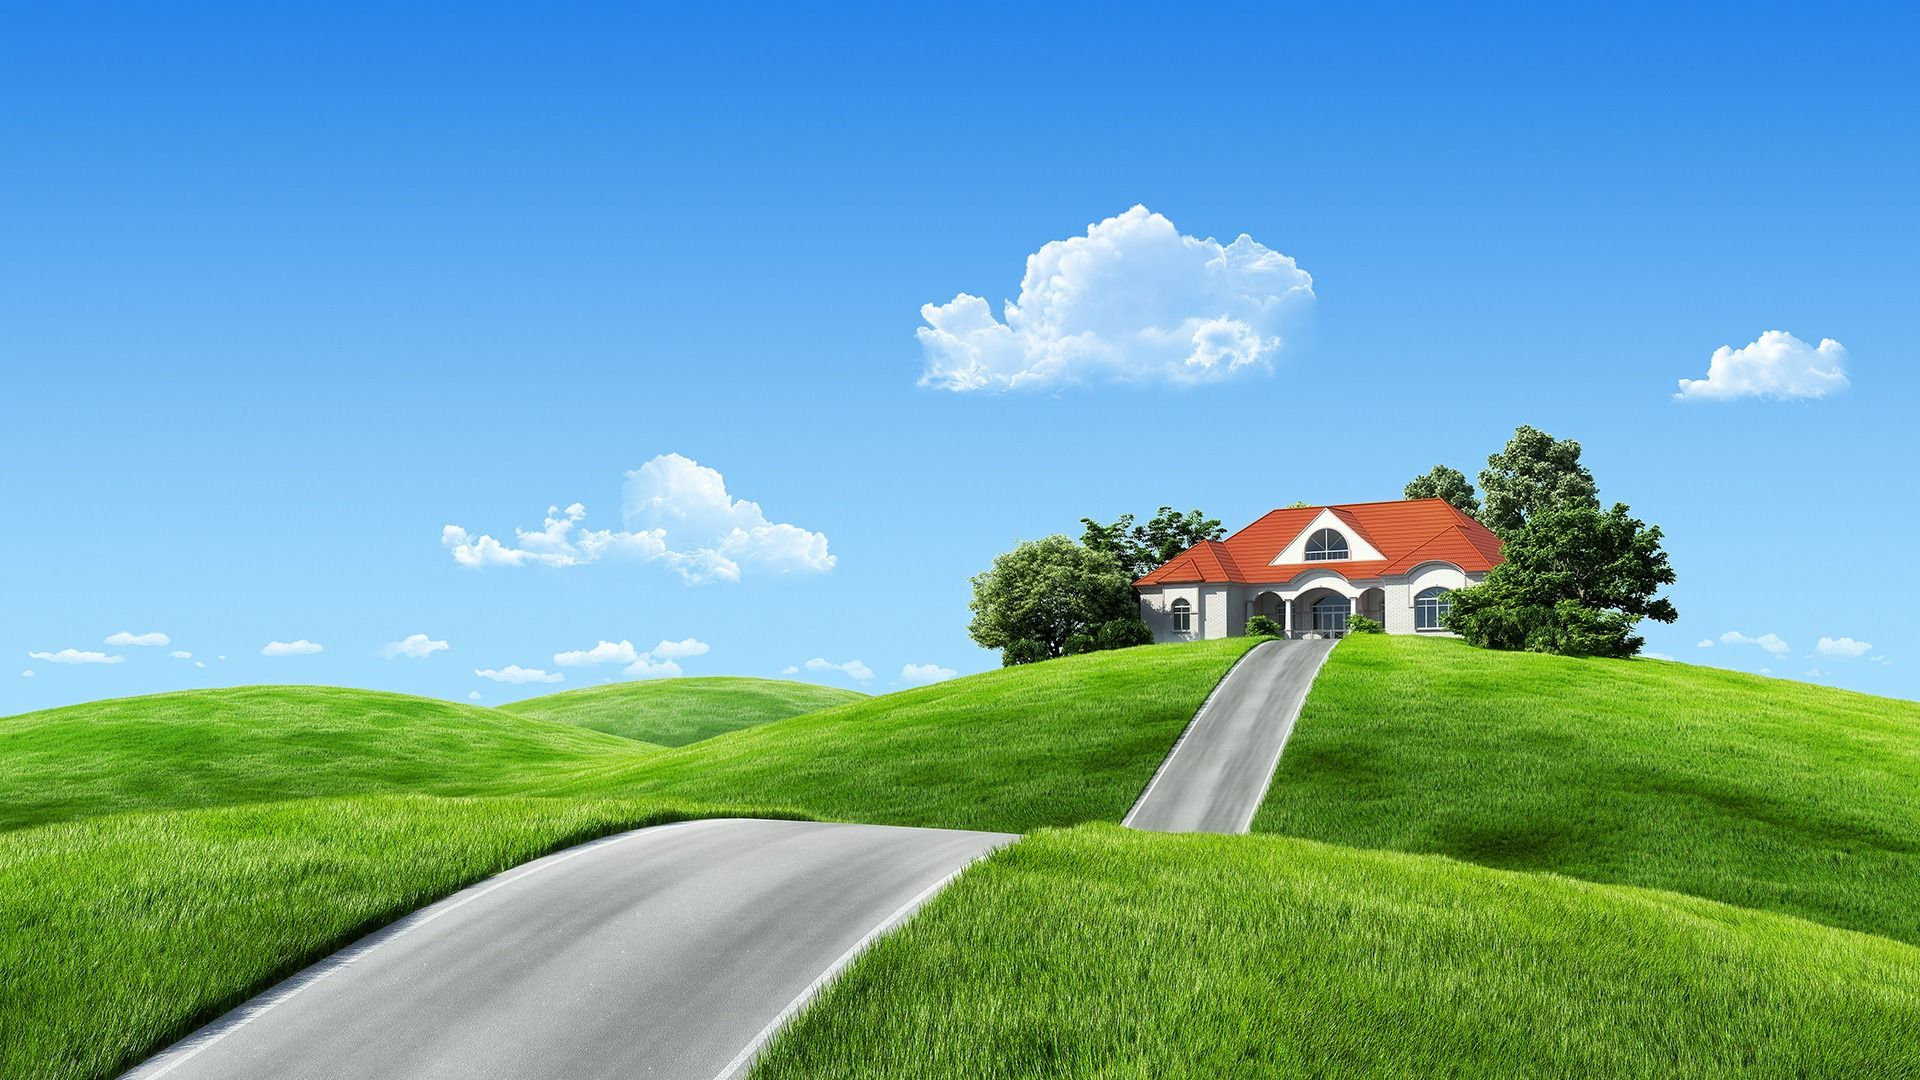 Dream House Wallpaper 1080p Xp4 House In Nature Dream House Exterior Home Wallpaper